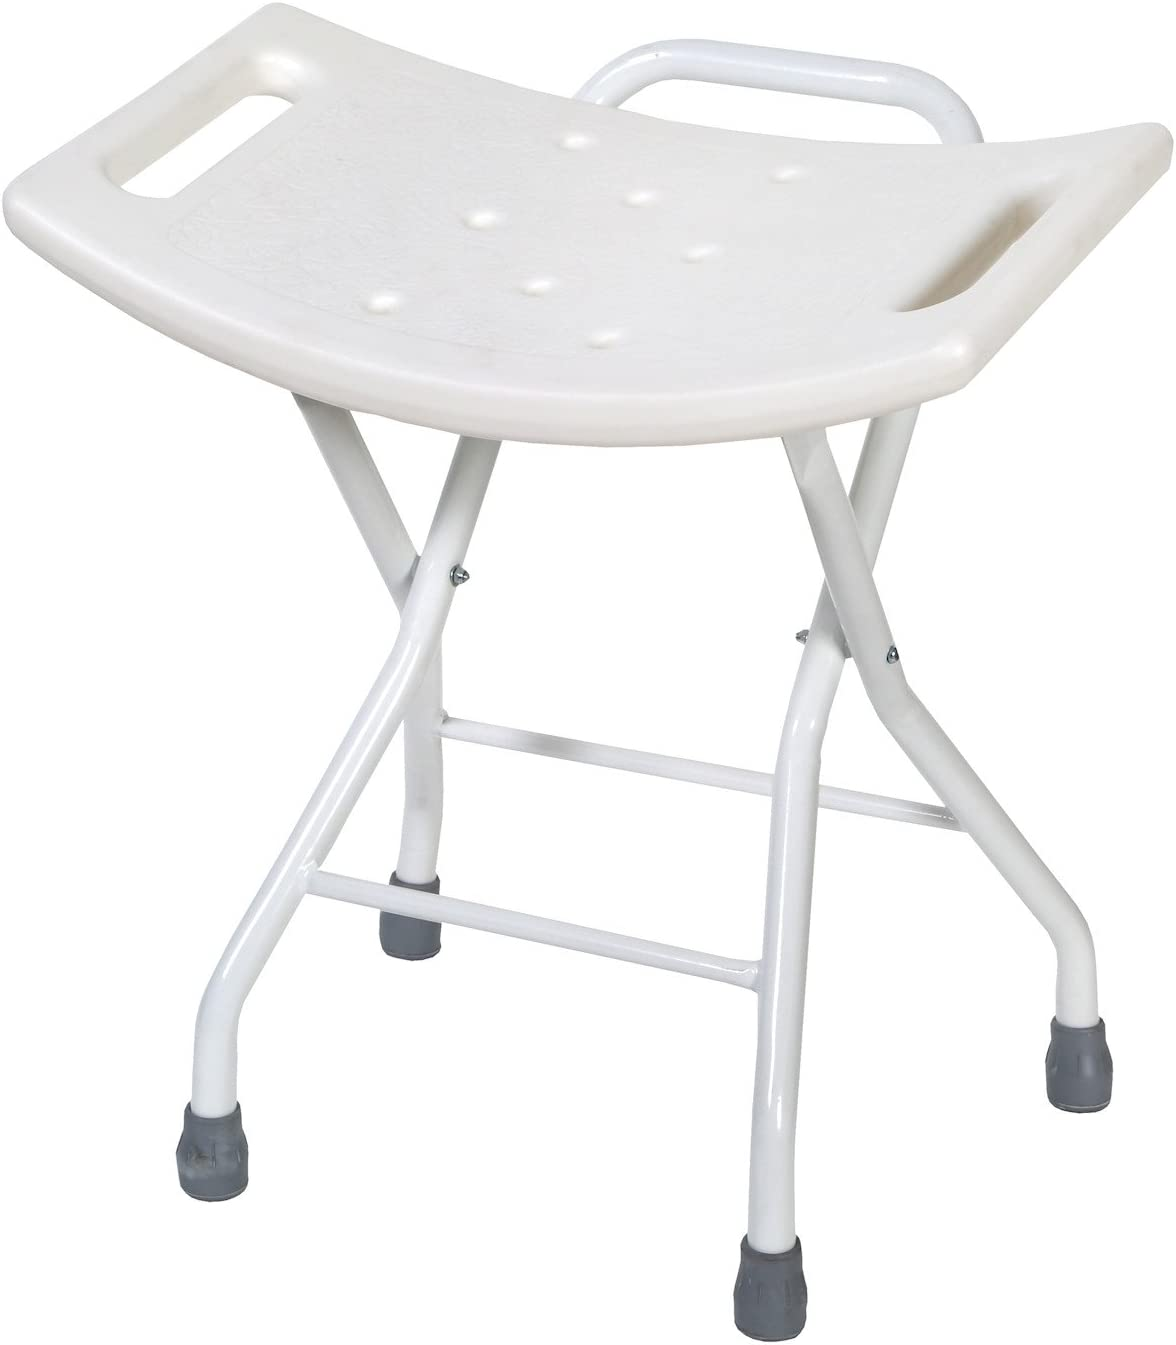 Folding Bath and Shower Safety Seat Stool with Steel Frame